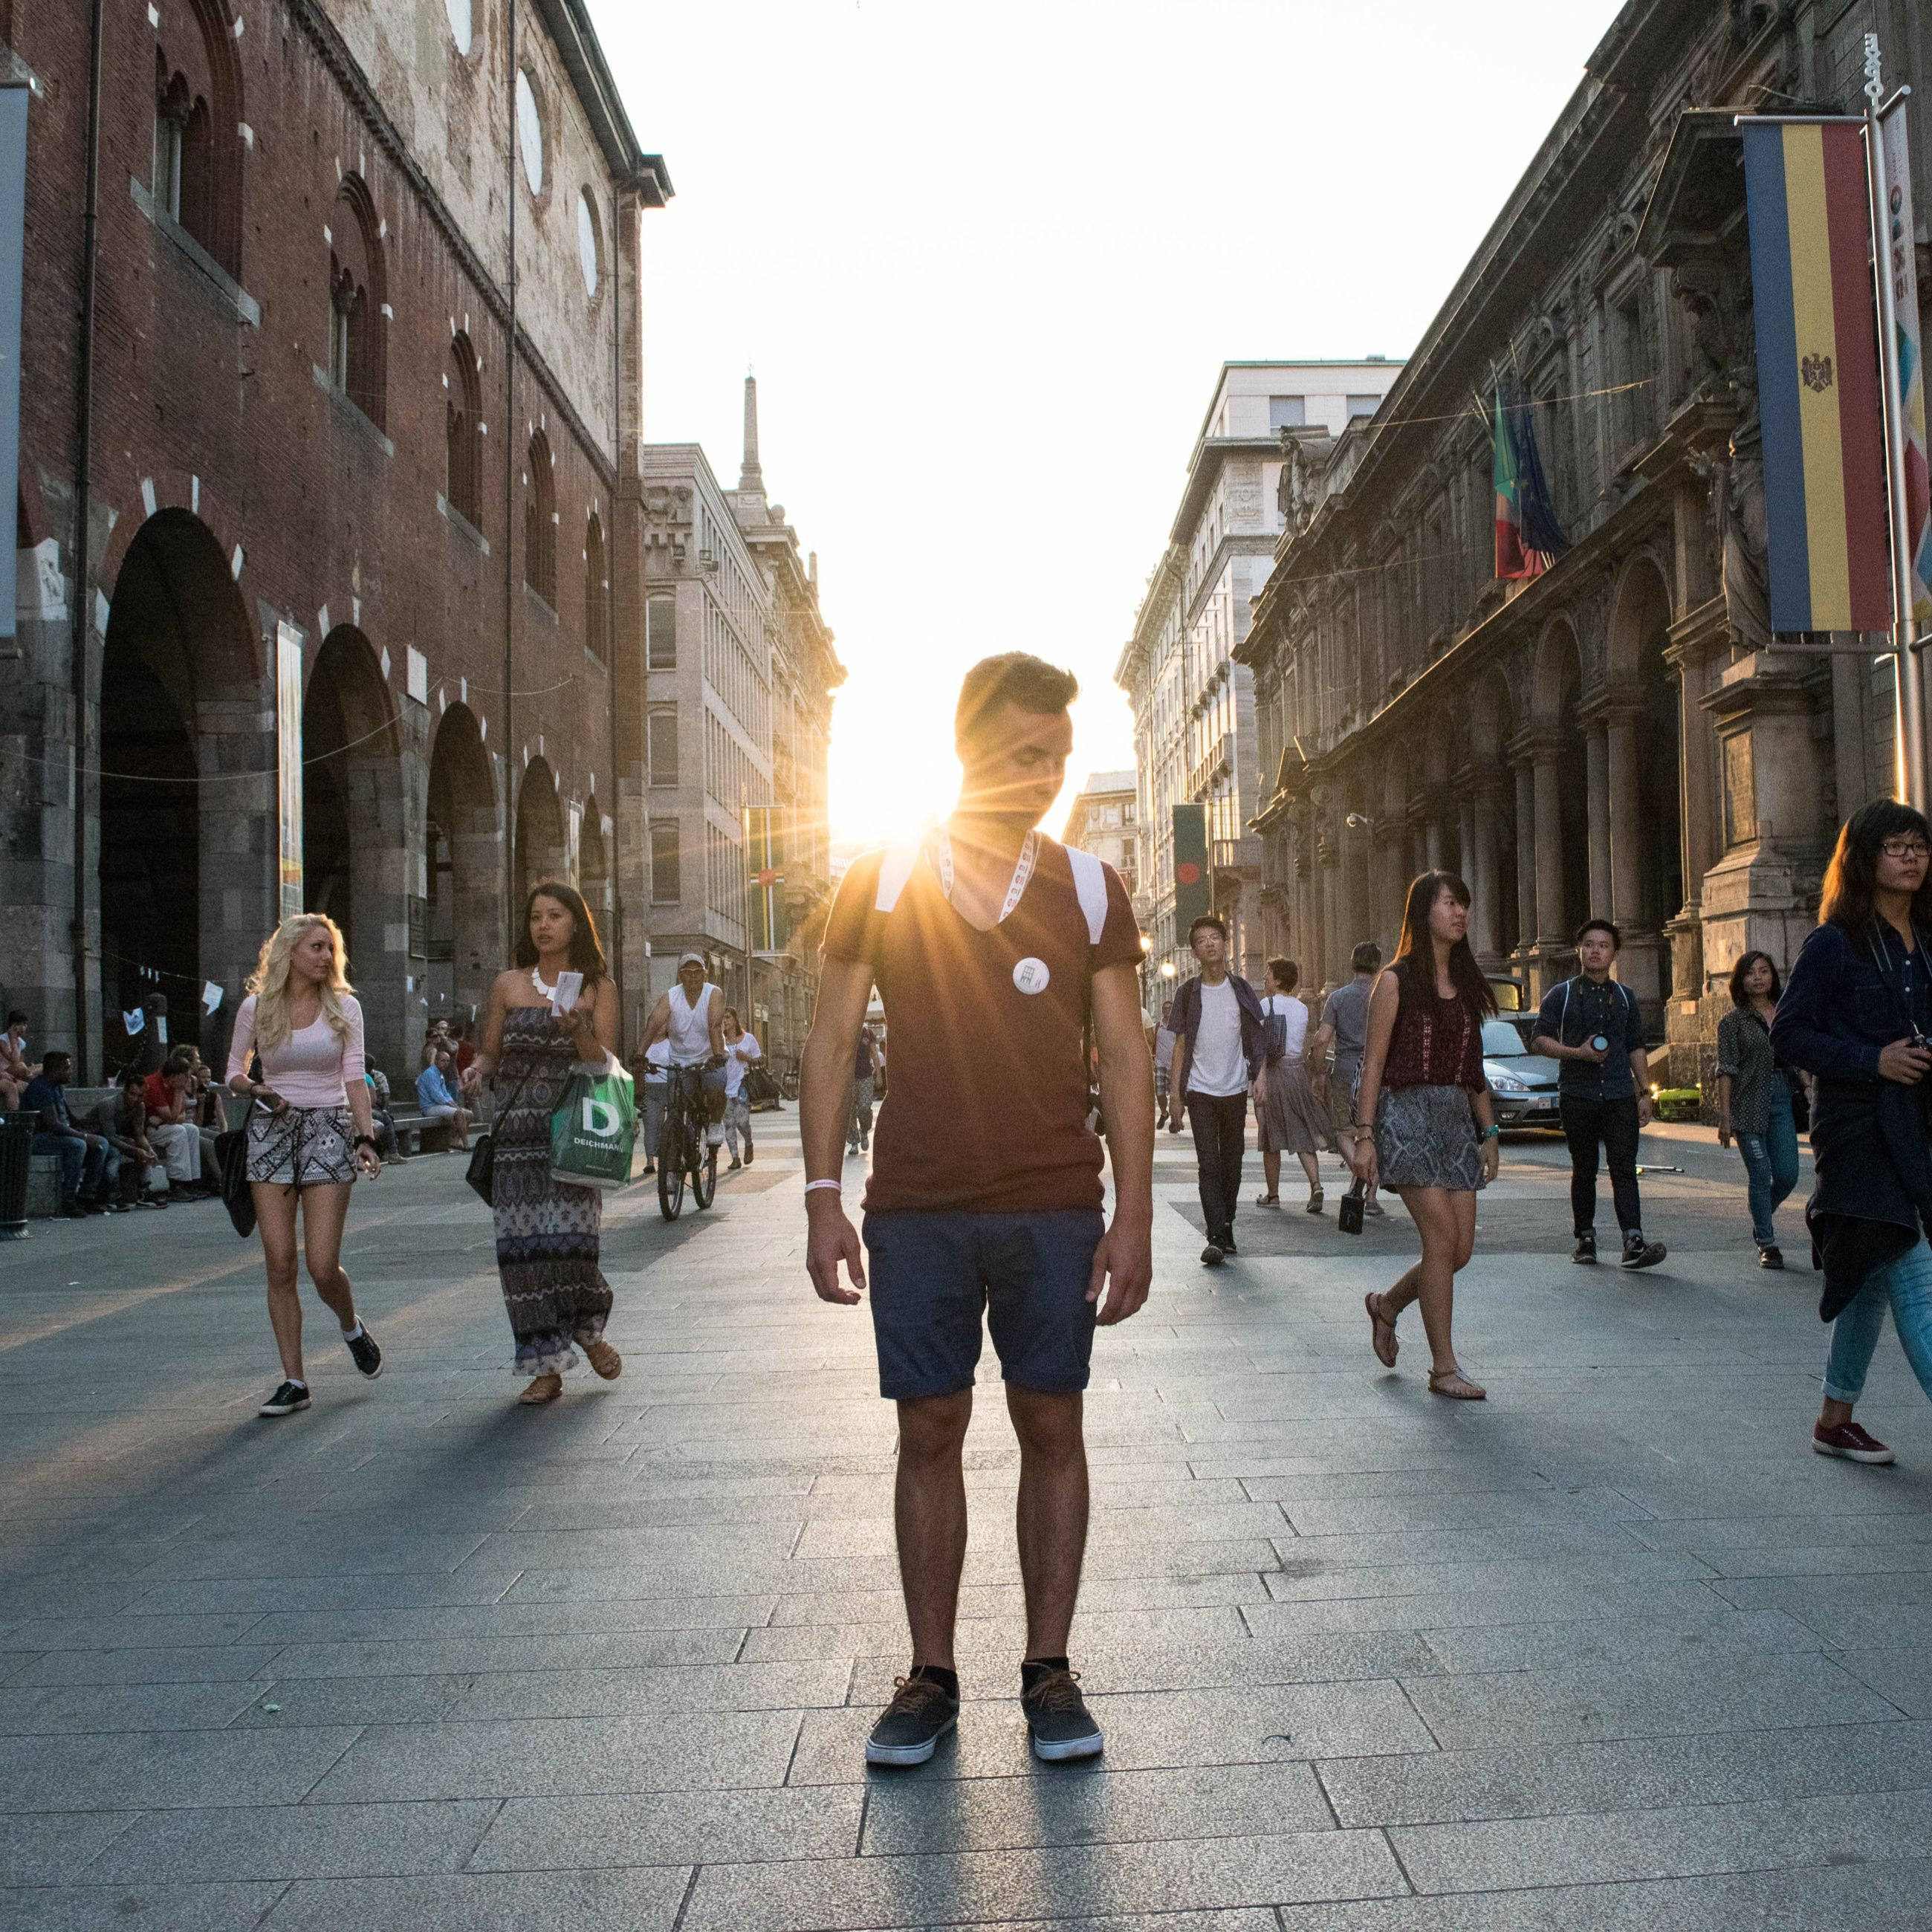 building exterior, architecture, built structure, lifestyles, men, large group of people, walking, city, full length, street, leisure activity, person, city life, sunlight, casual clothing, lens flare, sun, sunbeam, clear sky